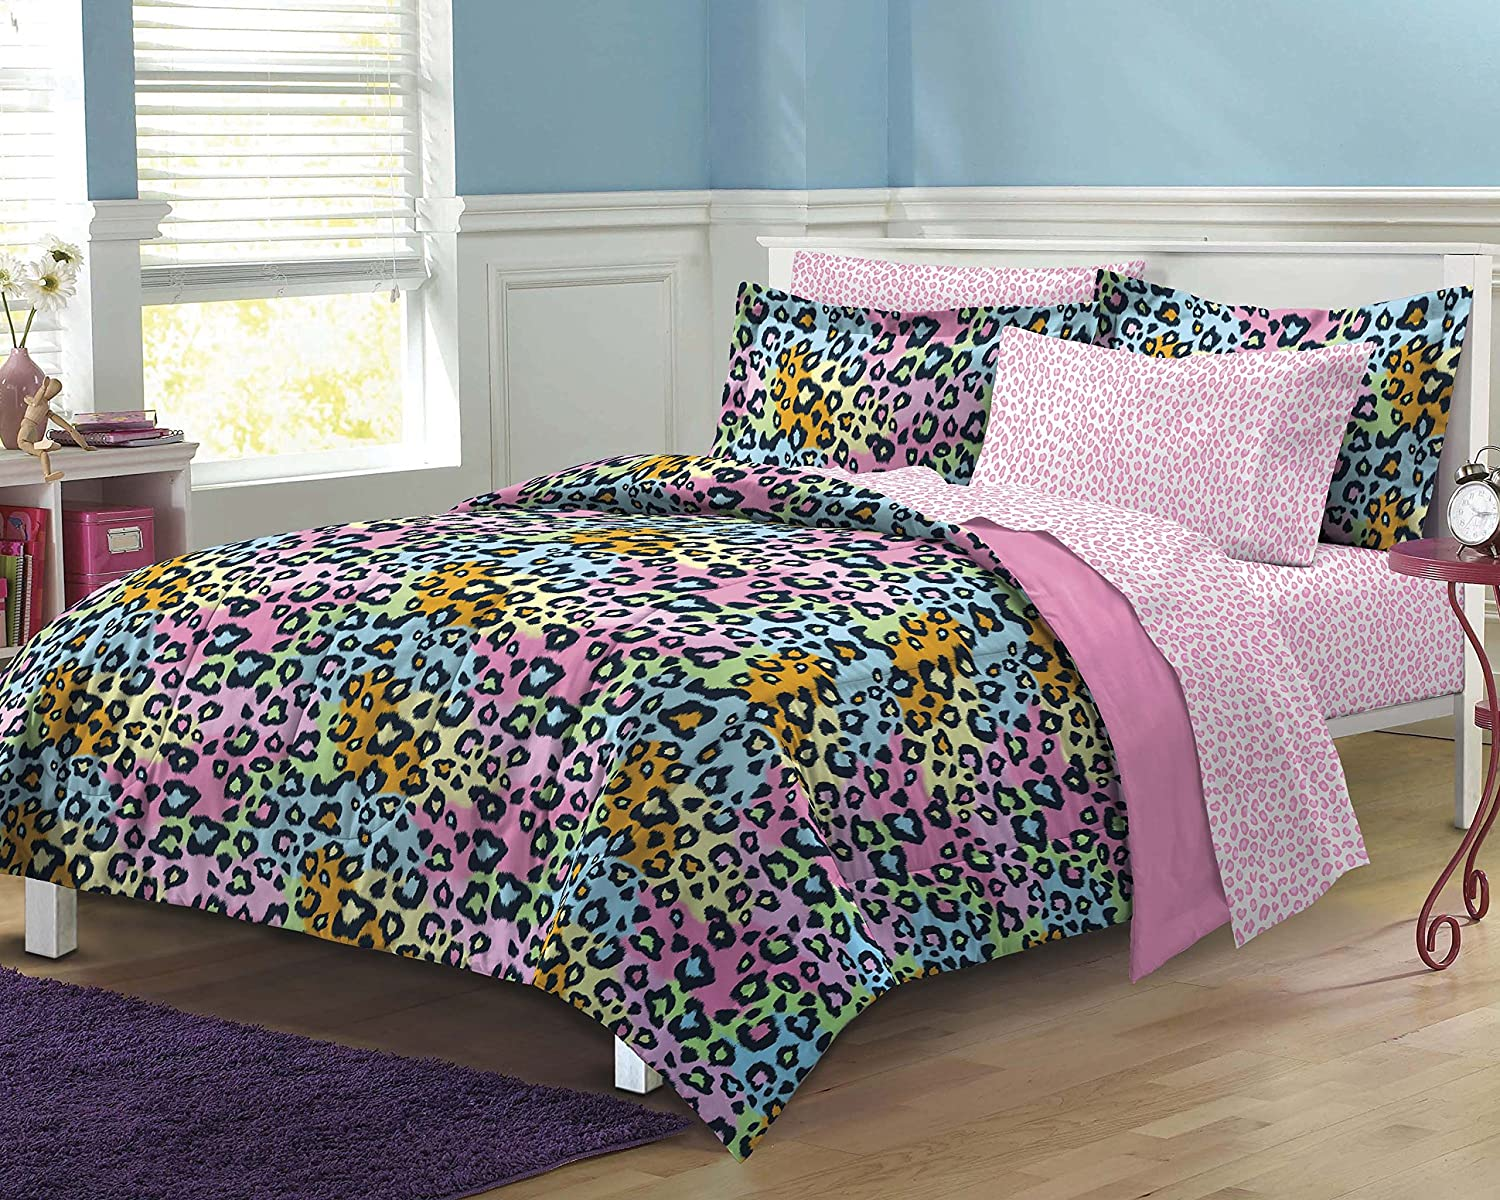 My Room Neon Leopard Ultra Soft Microfiber Girls Comforter Set, Multi-Colored, Twin/Twin X-Large CHMJE 2A744801MU